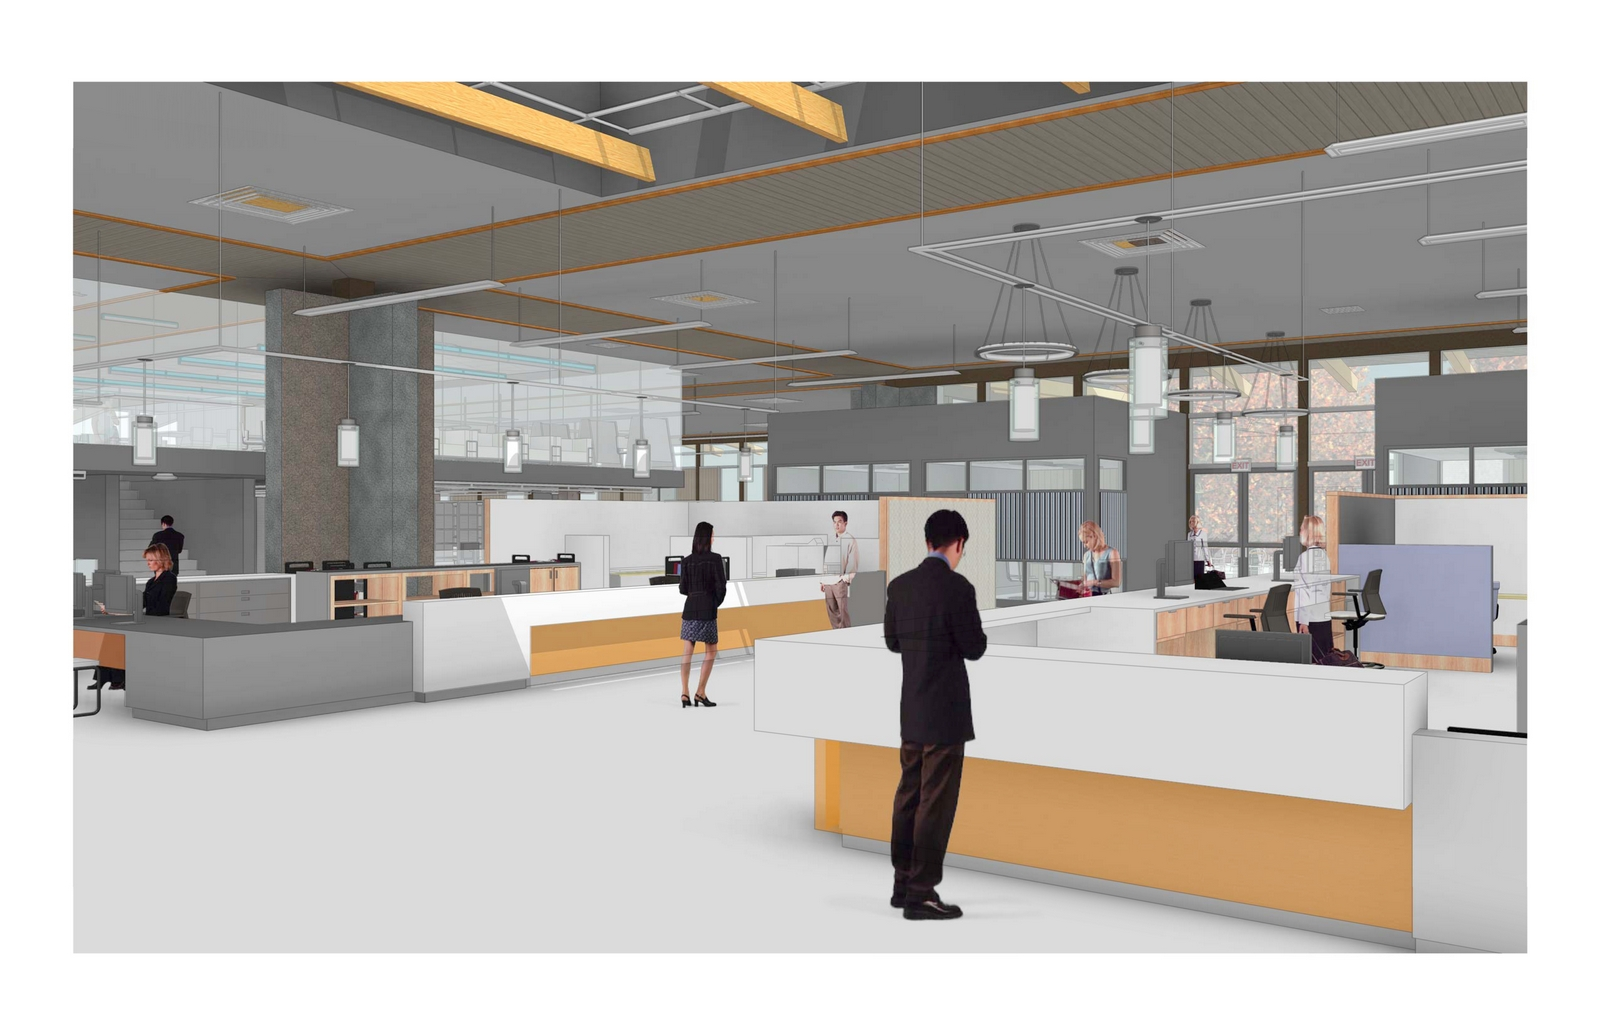 rendering of public service desks in the remodeled library